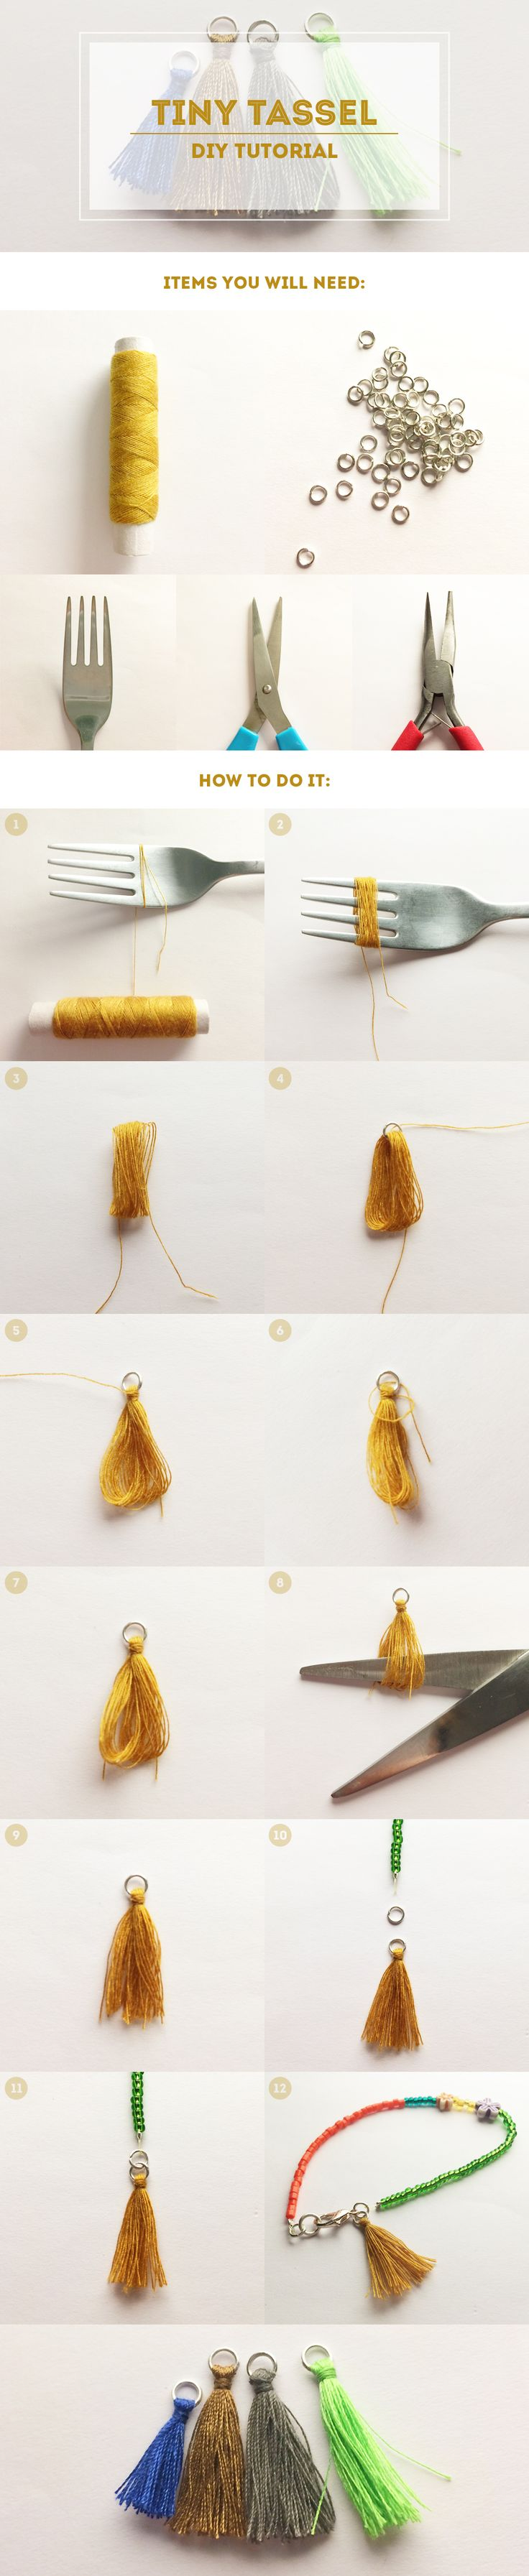 Tiny tassel DIY Tutorial